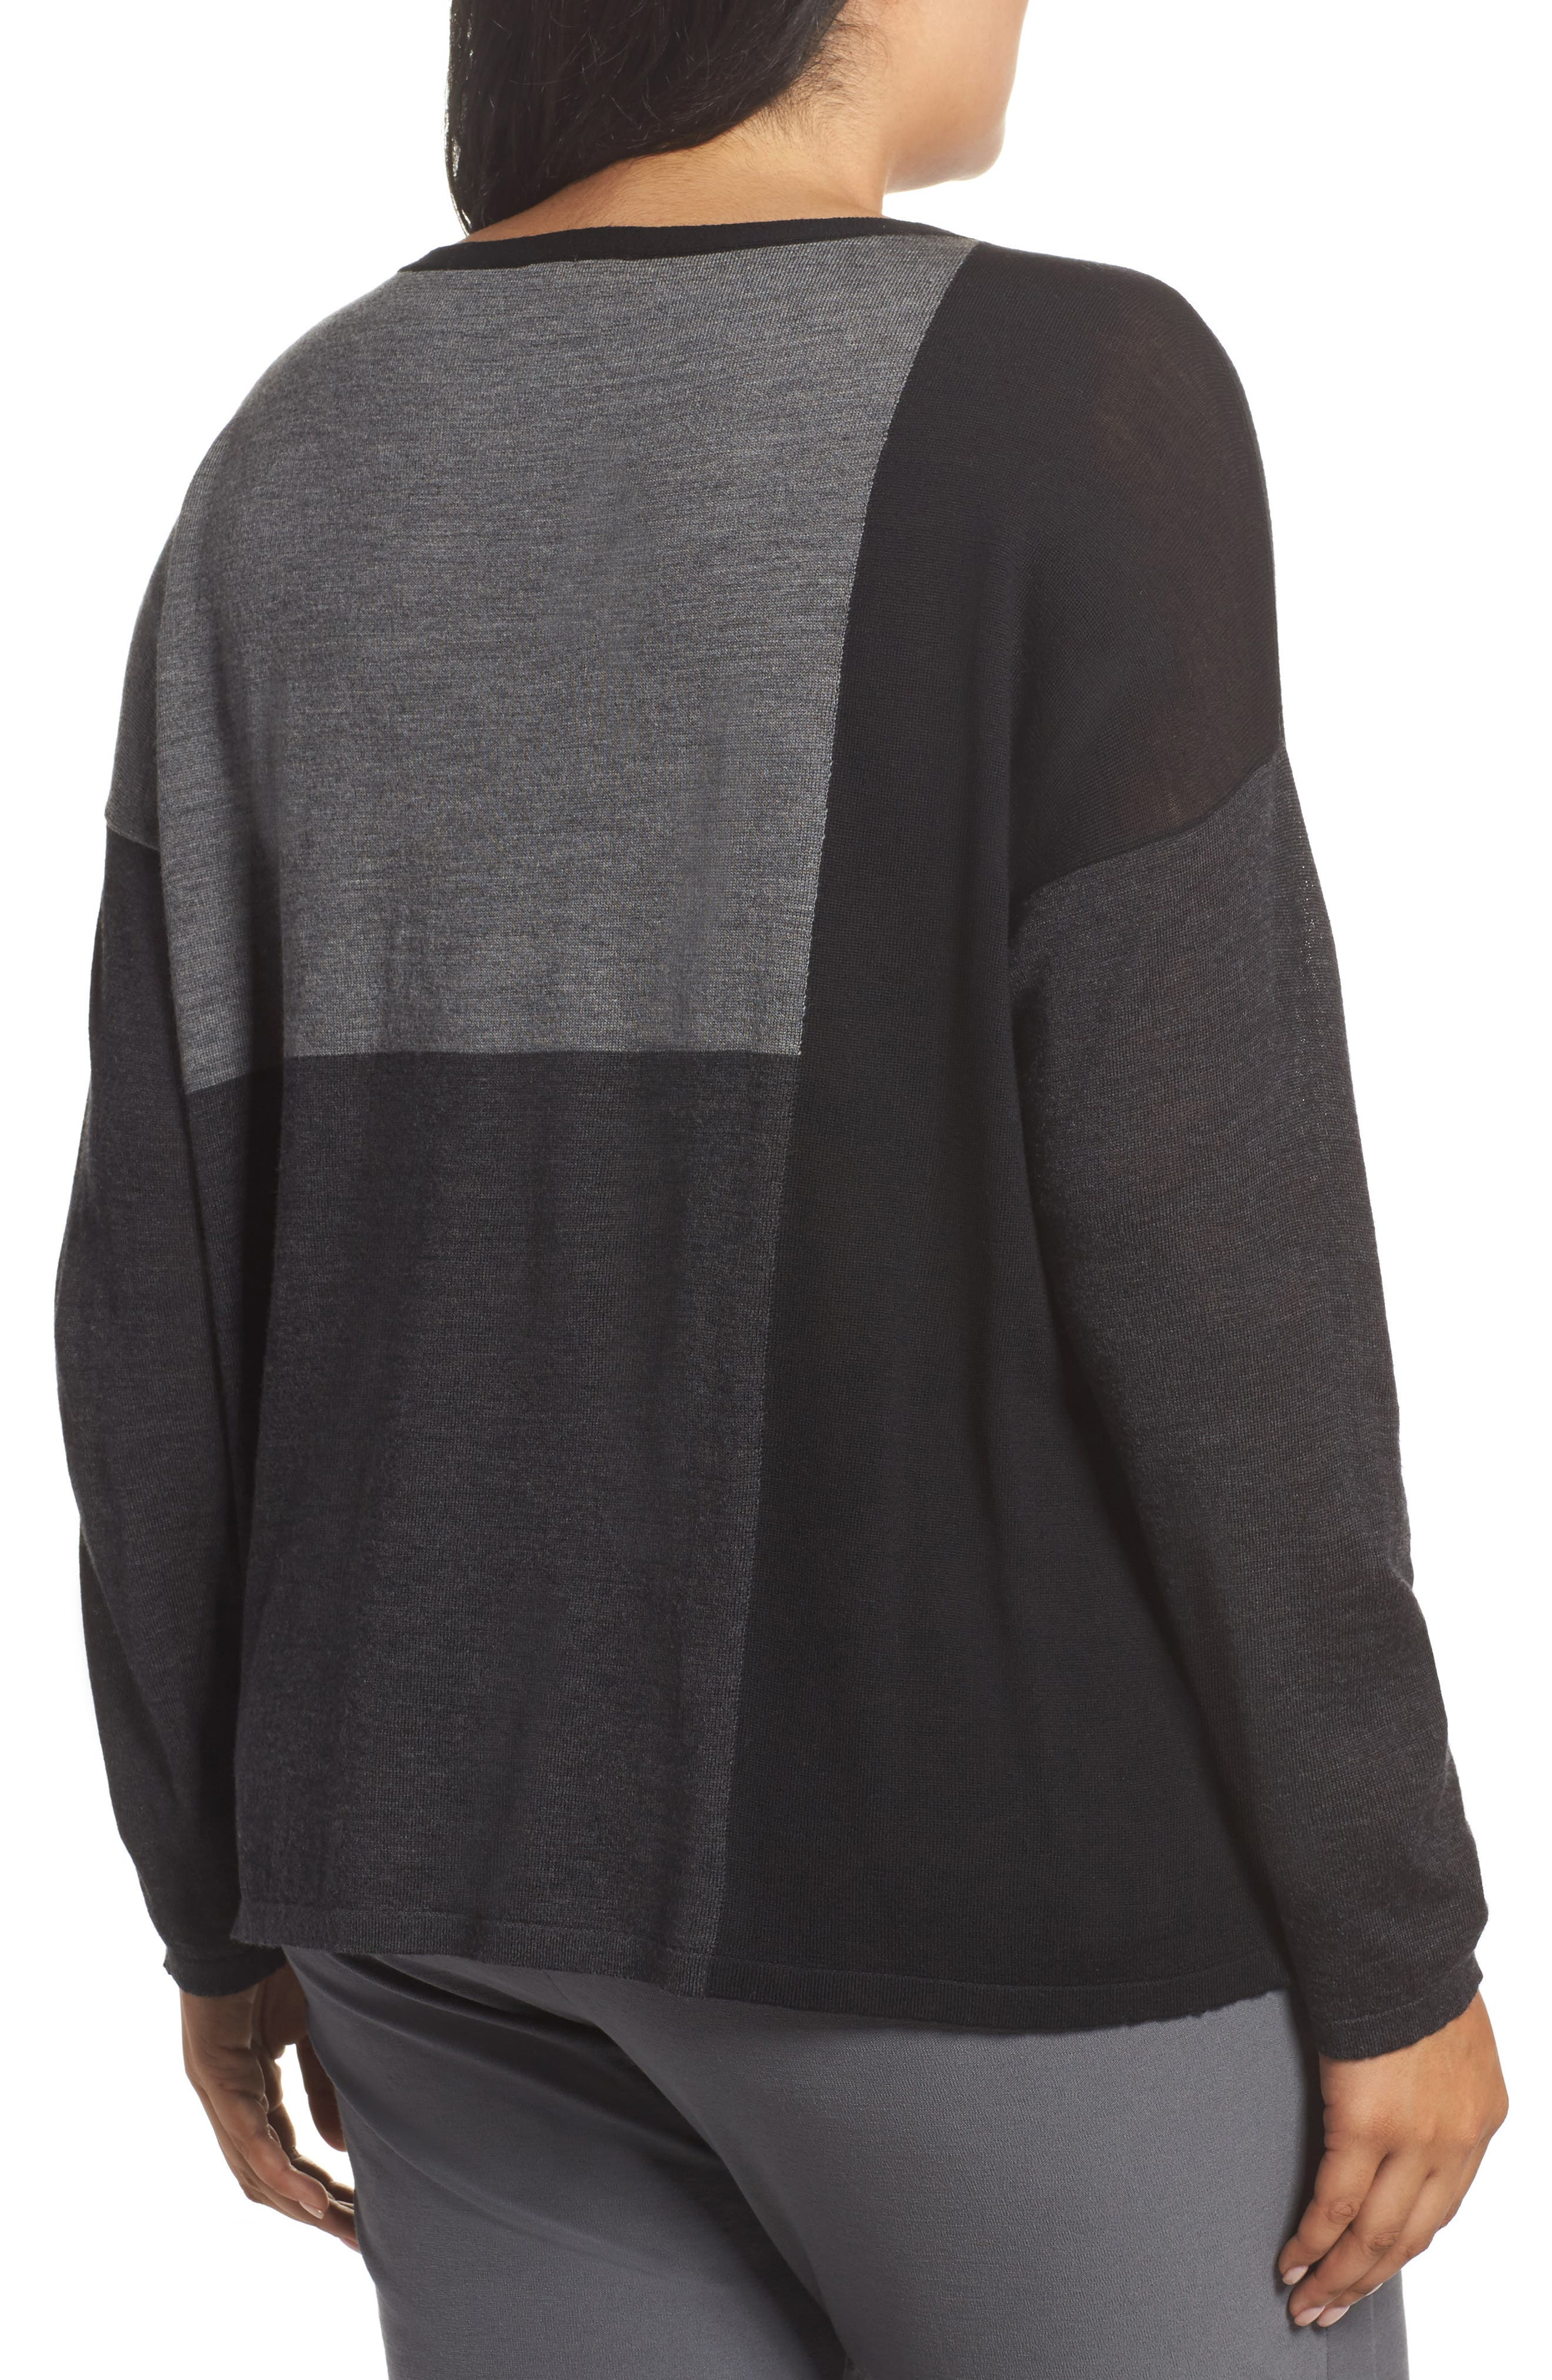 Colorblock Boxy Merino Wool Sweater,                             Alternate thumbnail 2, color,                             Charcoal